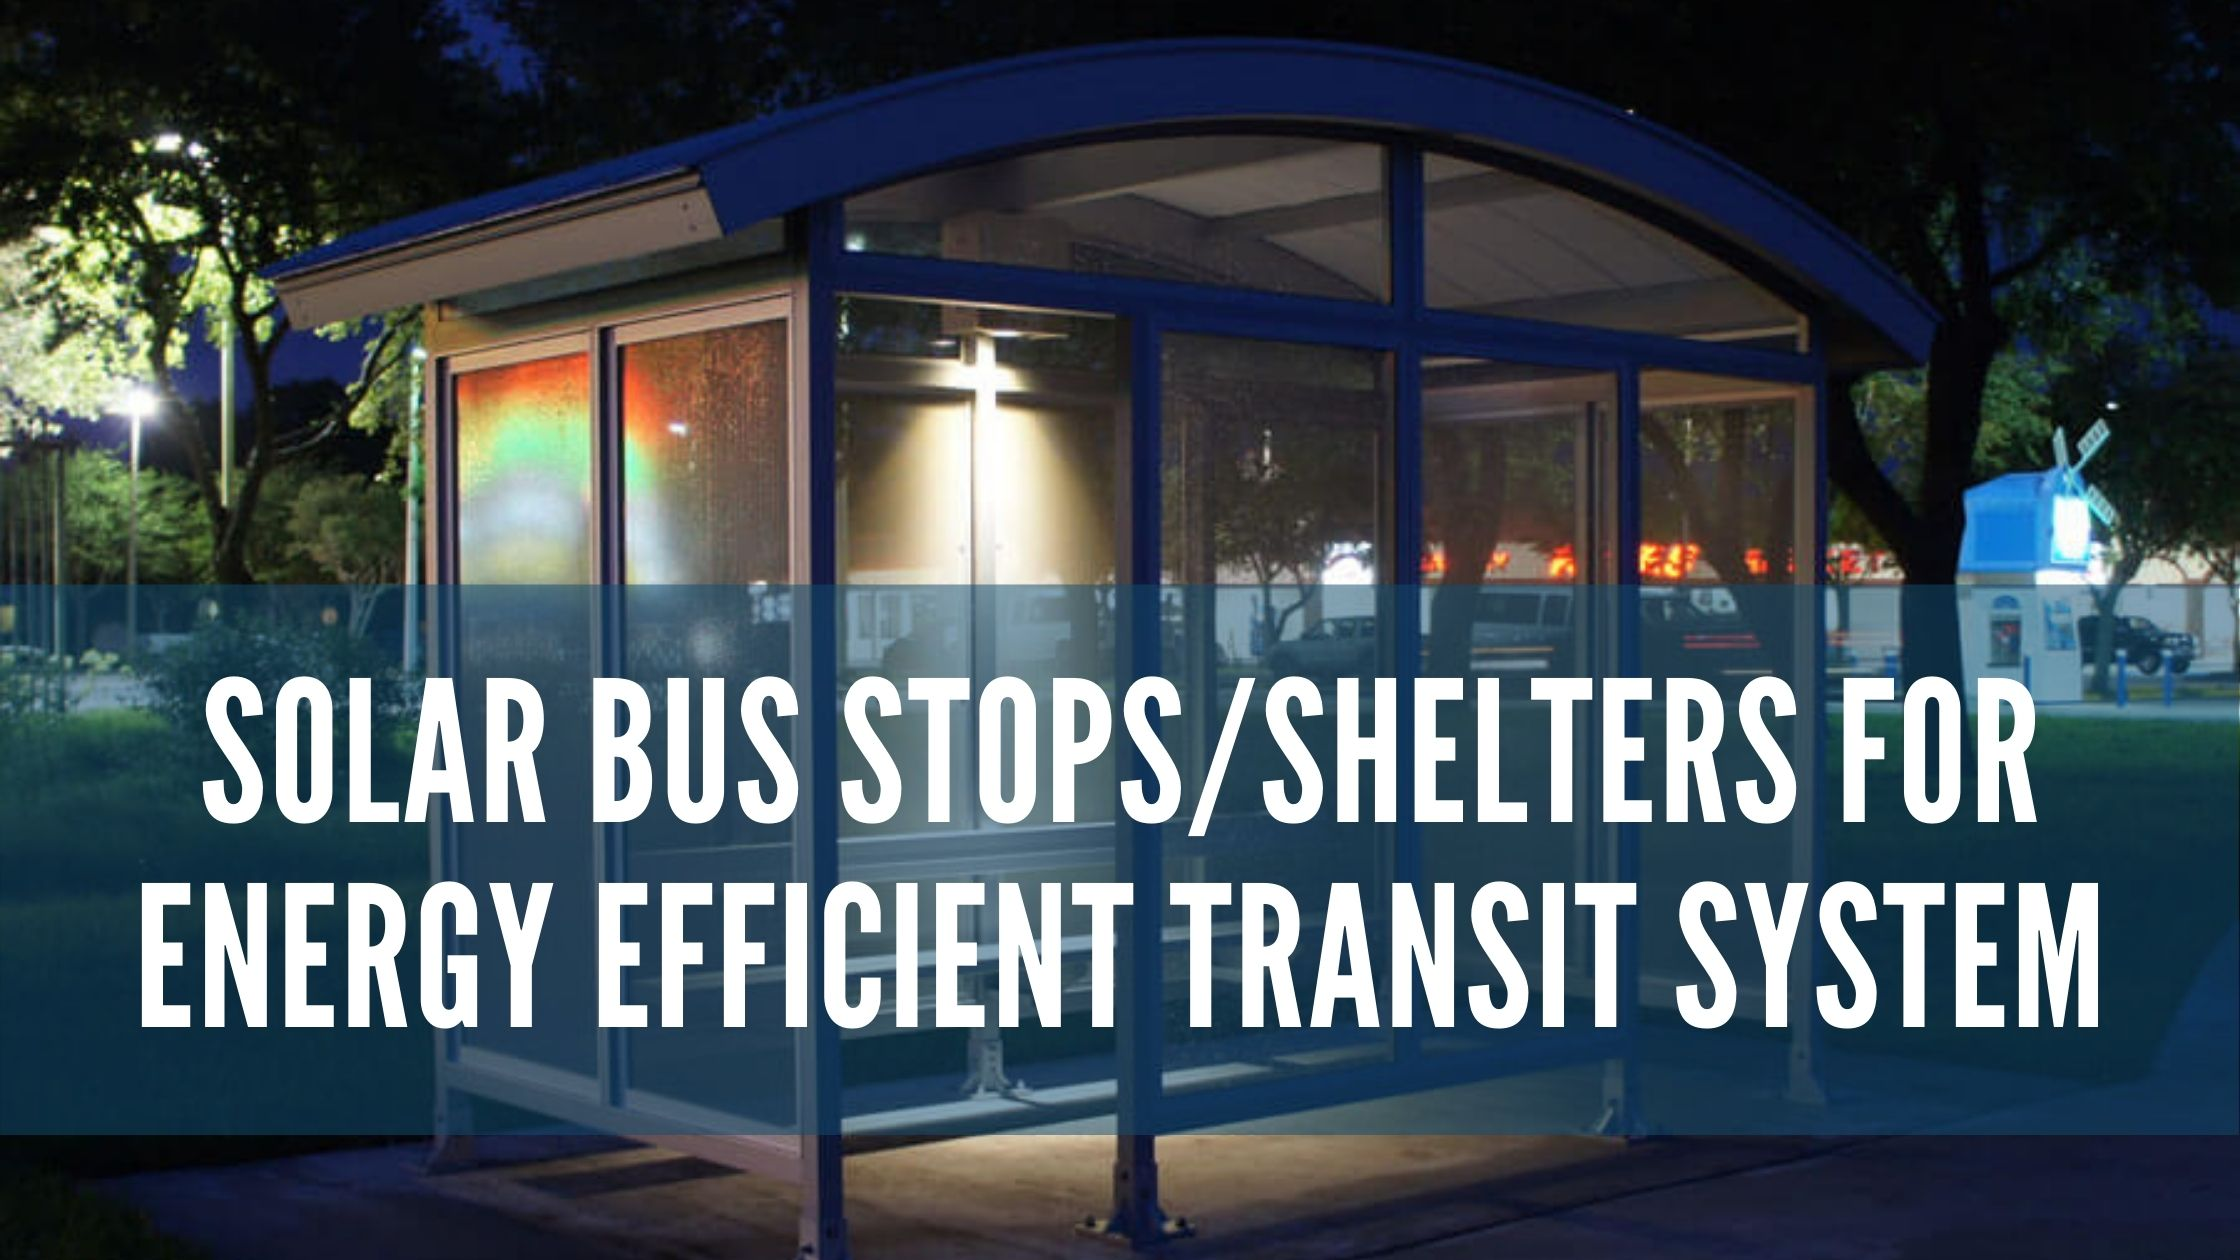 Solar Bus Stops/Shelters for Energy Efficient Transit System